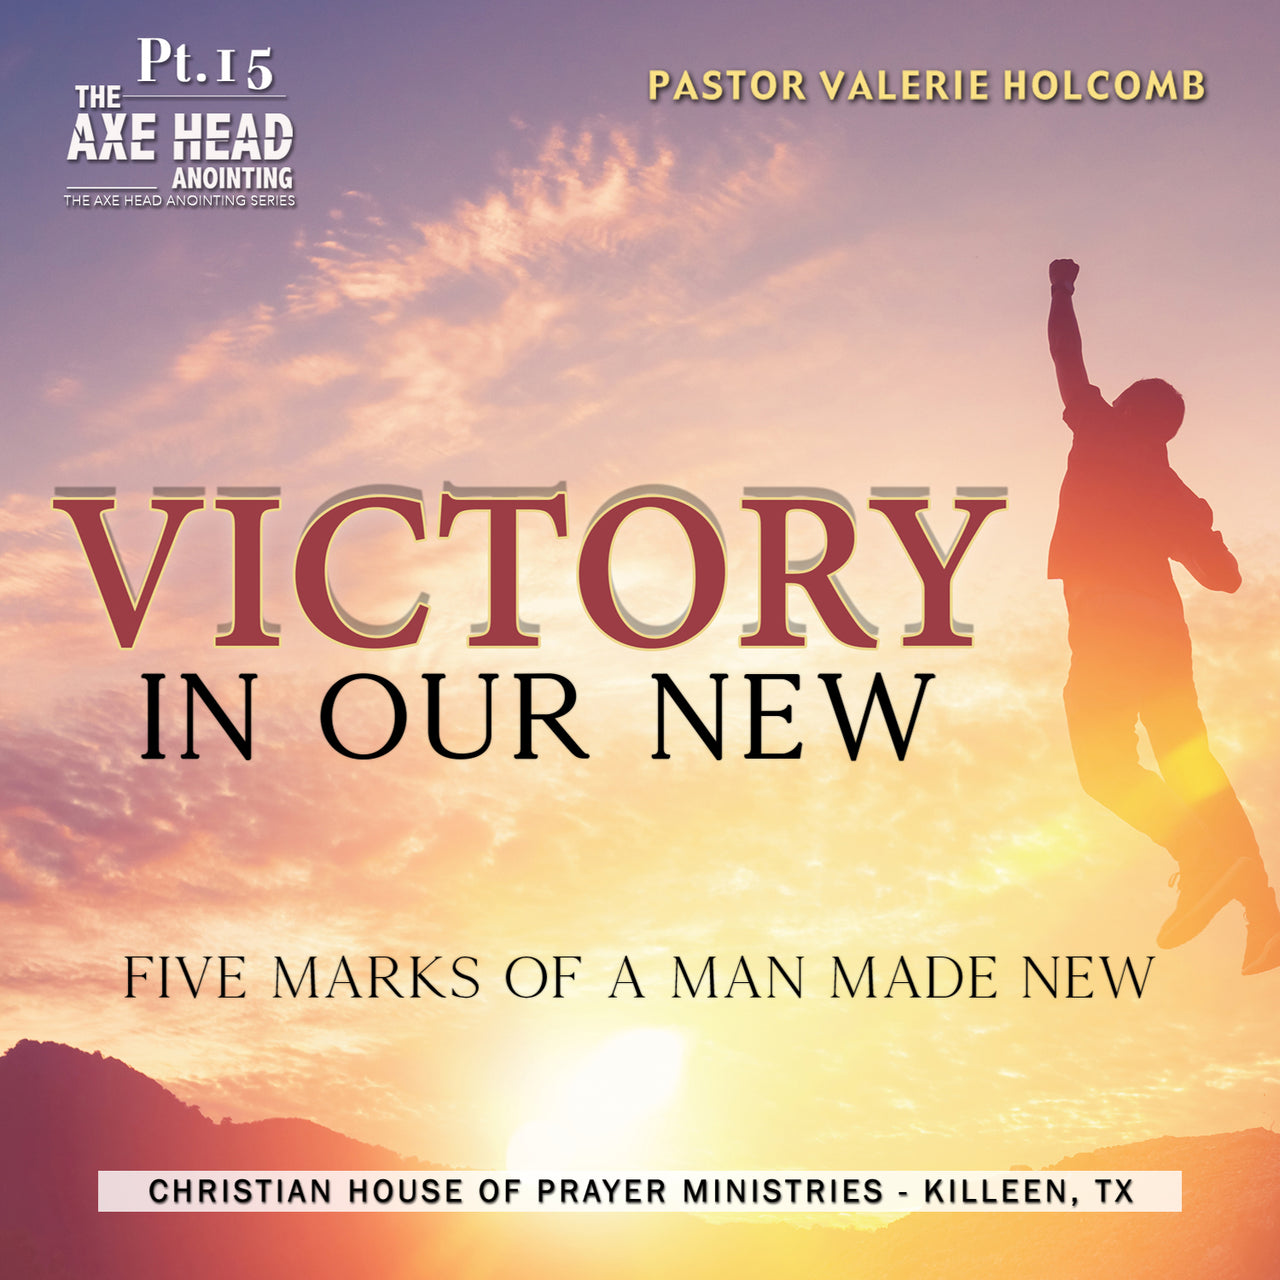 We Need The Axe Head Anointing Pt.15 - Victory In Our New - Five Marks of A Man Made New